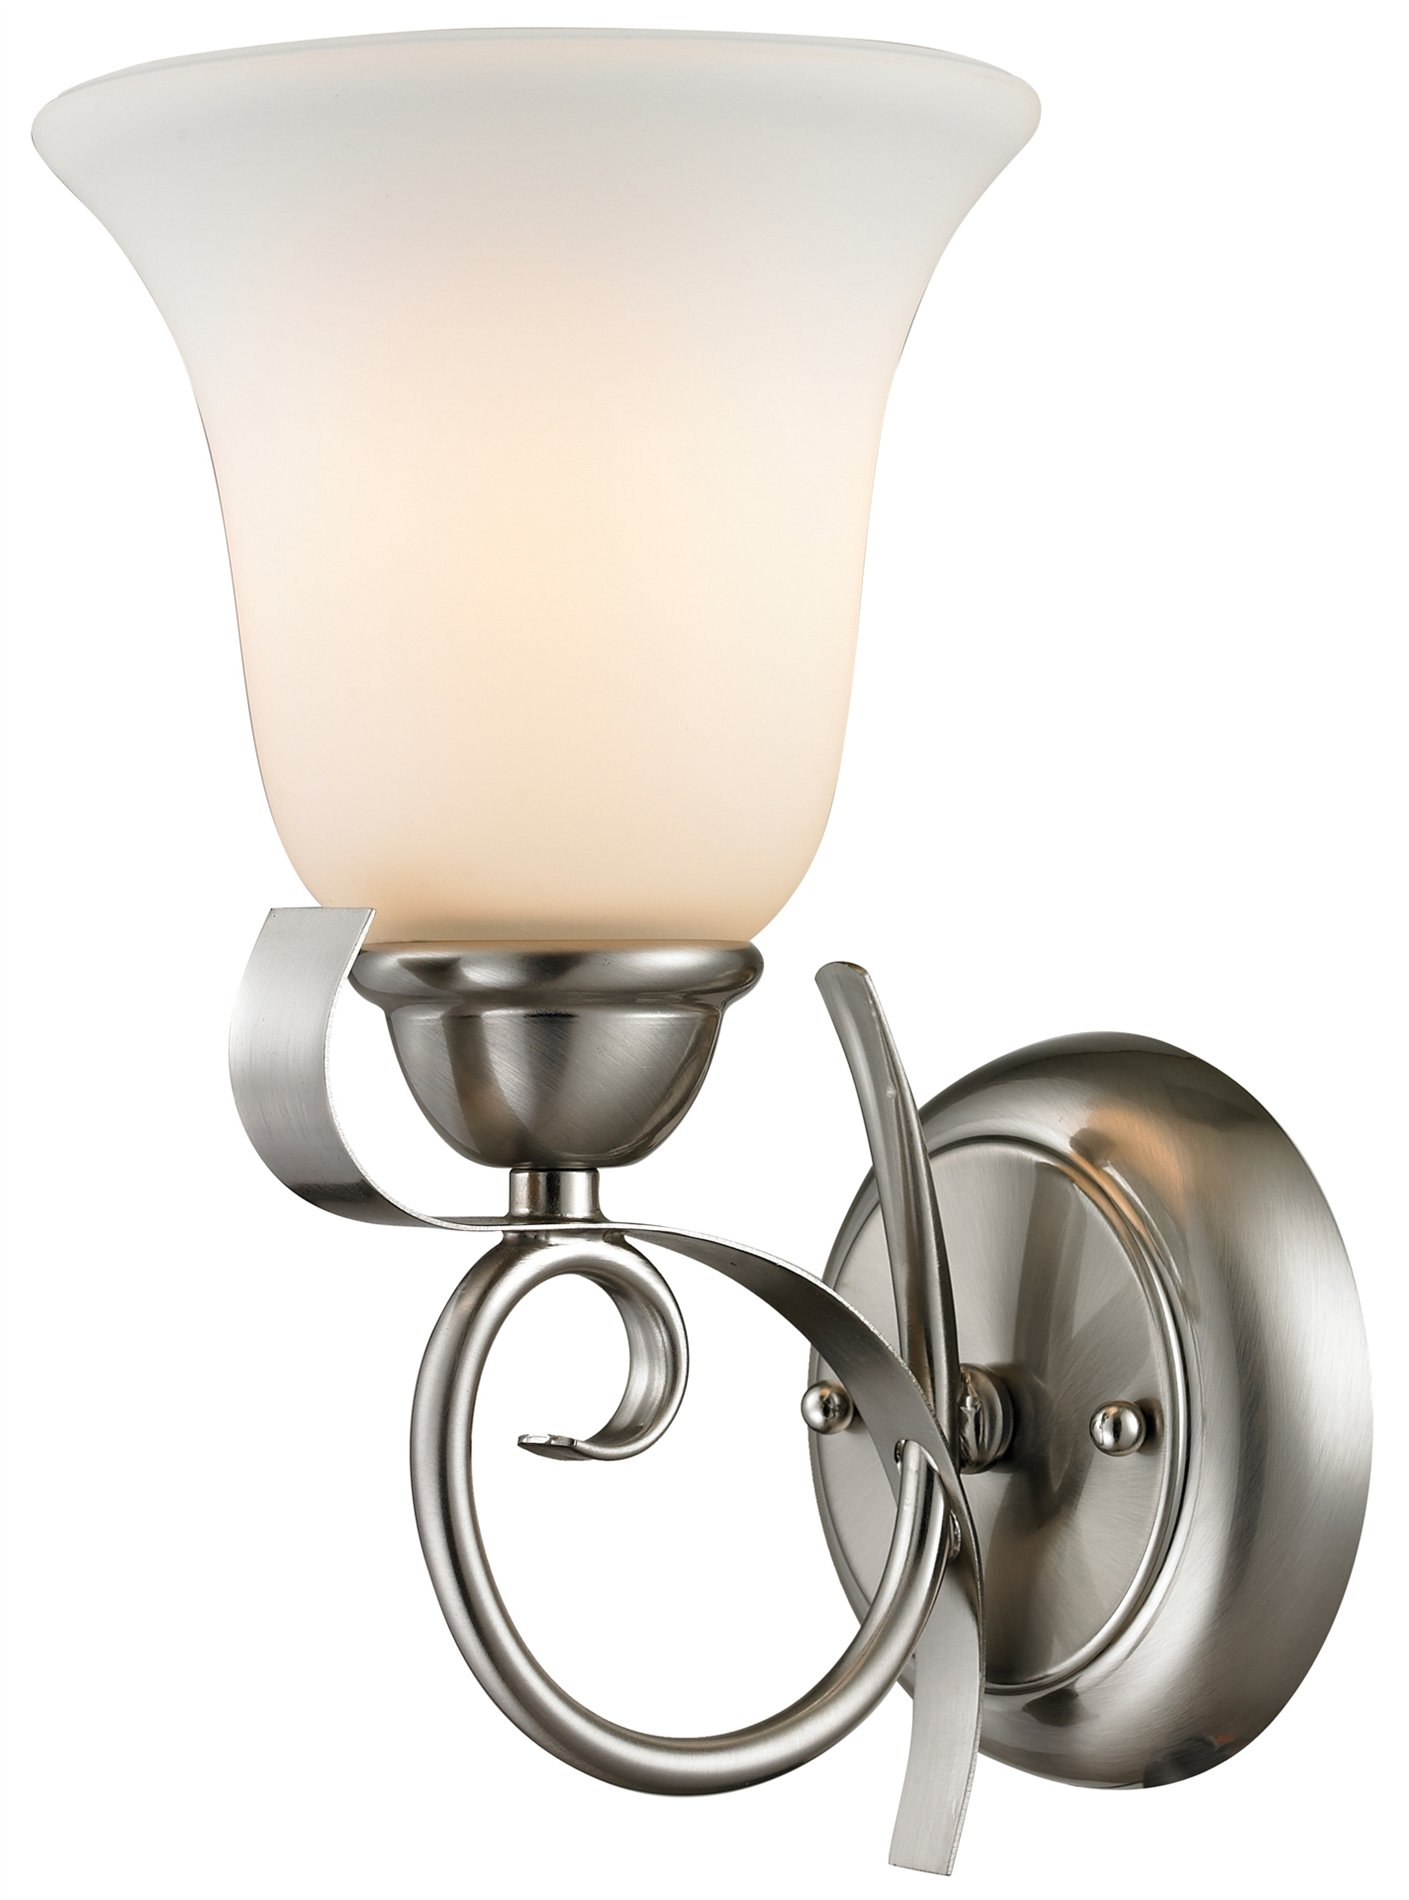 Cornerstone 1001WS 20 Brighton Transitional Wall Sconce CRS 1001WS 20